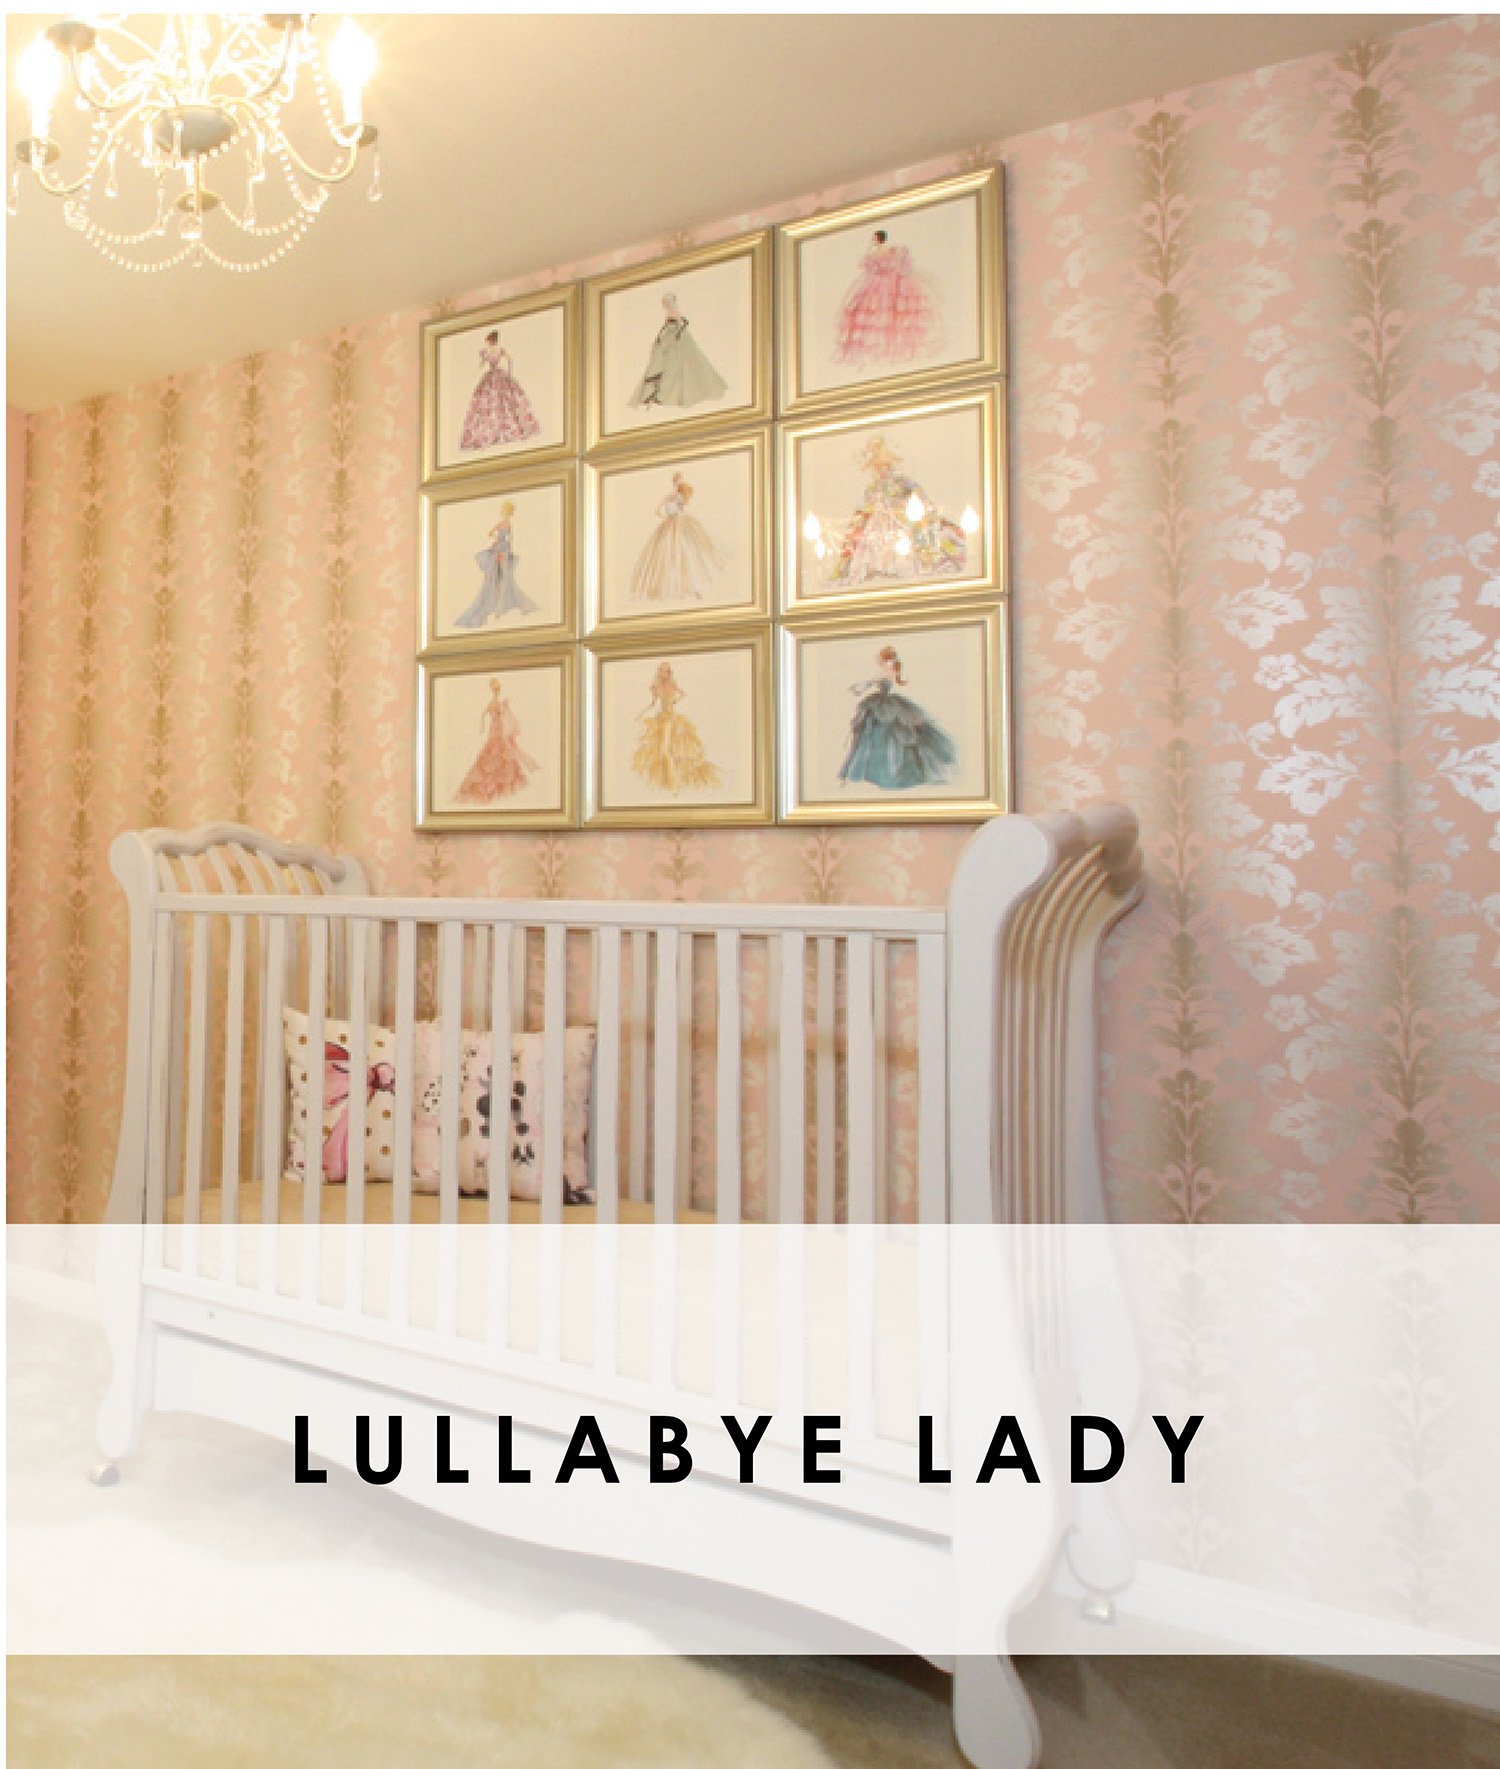 Lullabye Lady.jpg